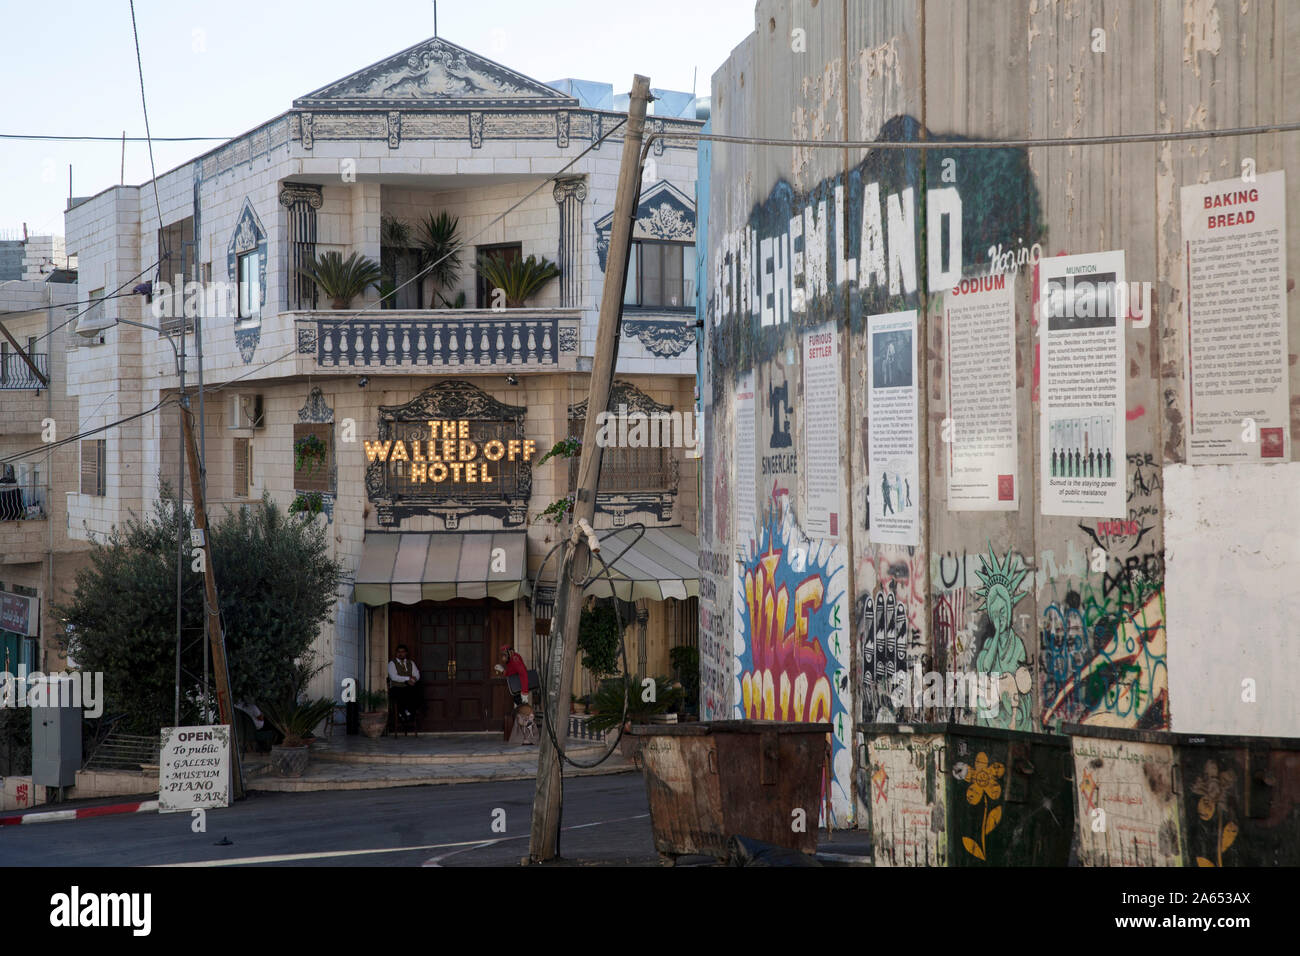 West Bank Bethlehem The Walled Off Hotel Overlooking The Wall That Separates Israel And Palestine Hotel Open In 2017 By Artist Bansky Stock Photo Alamy